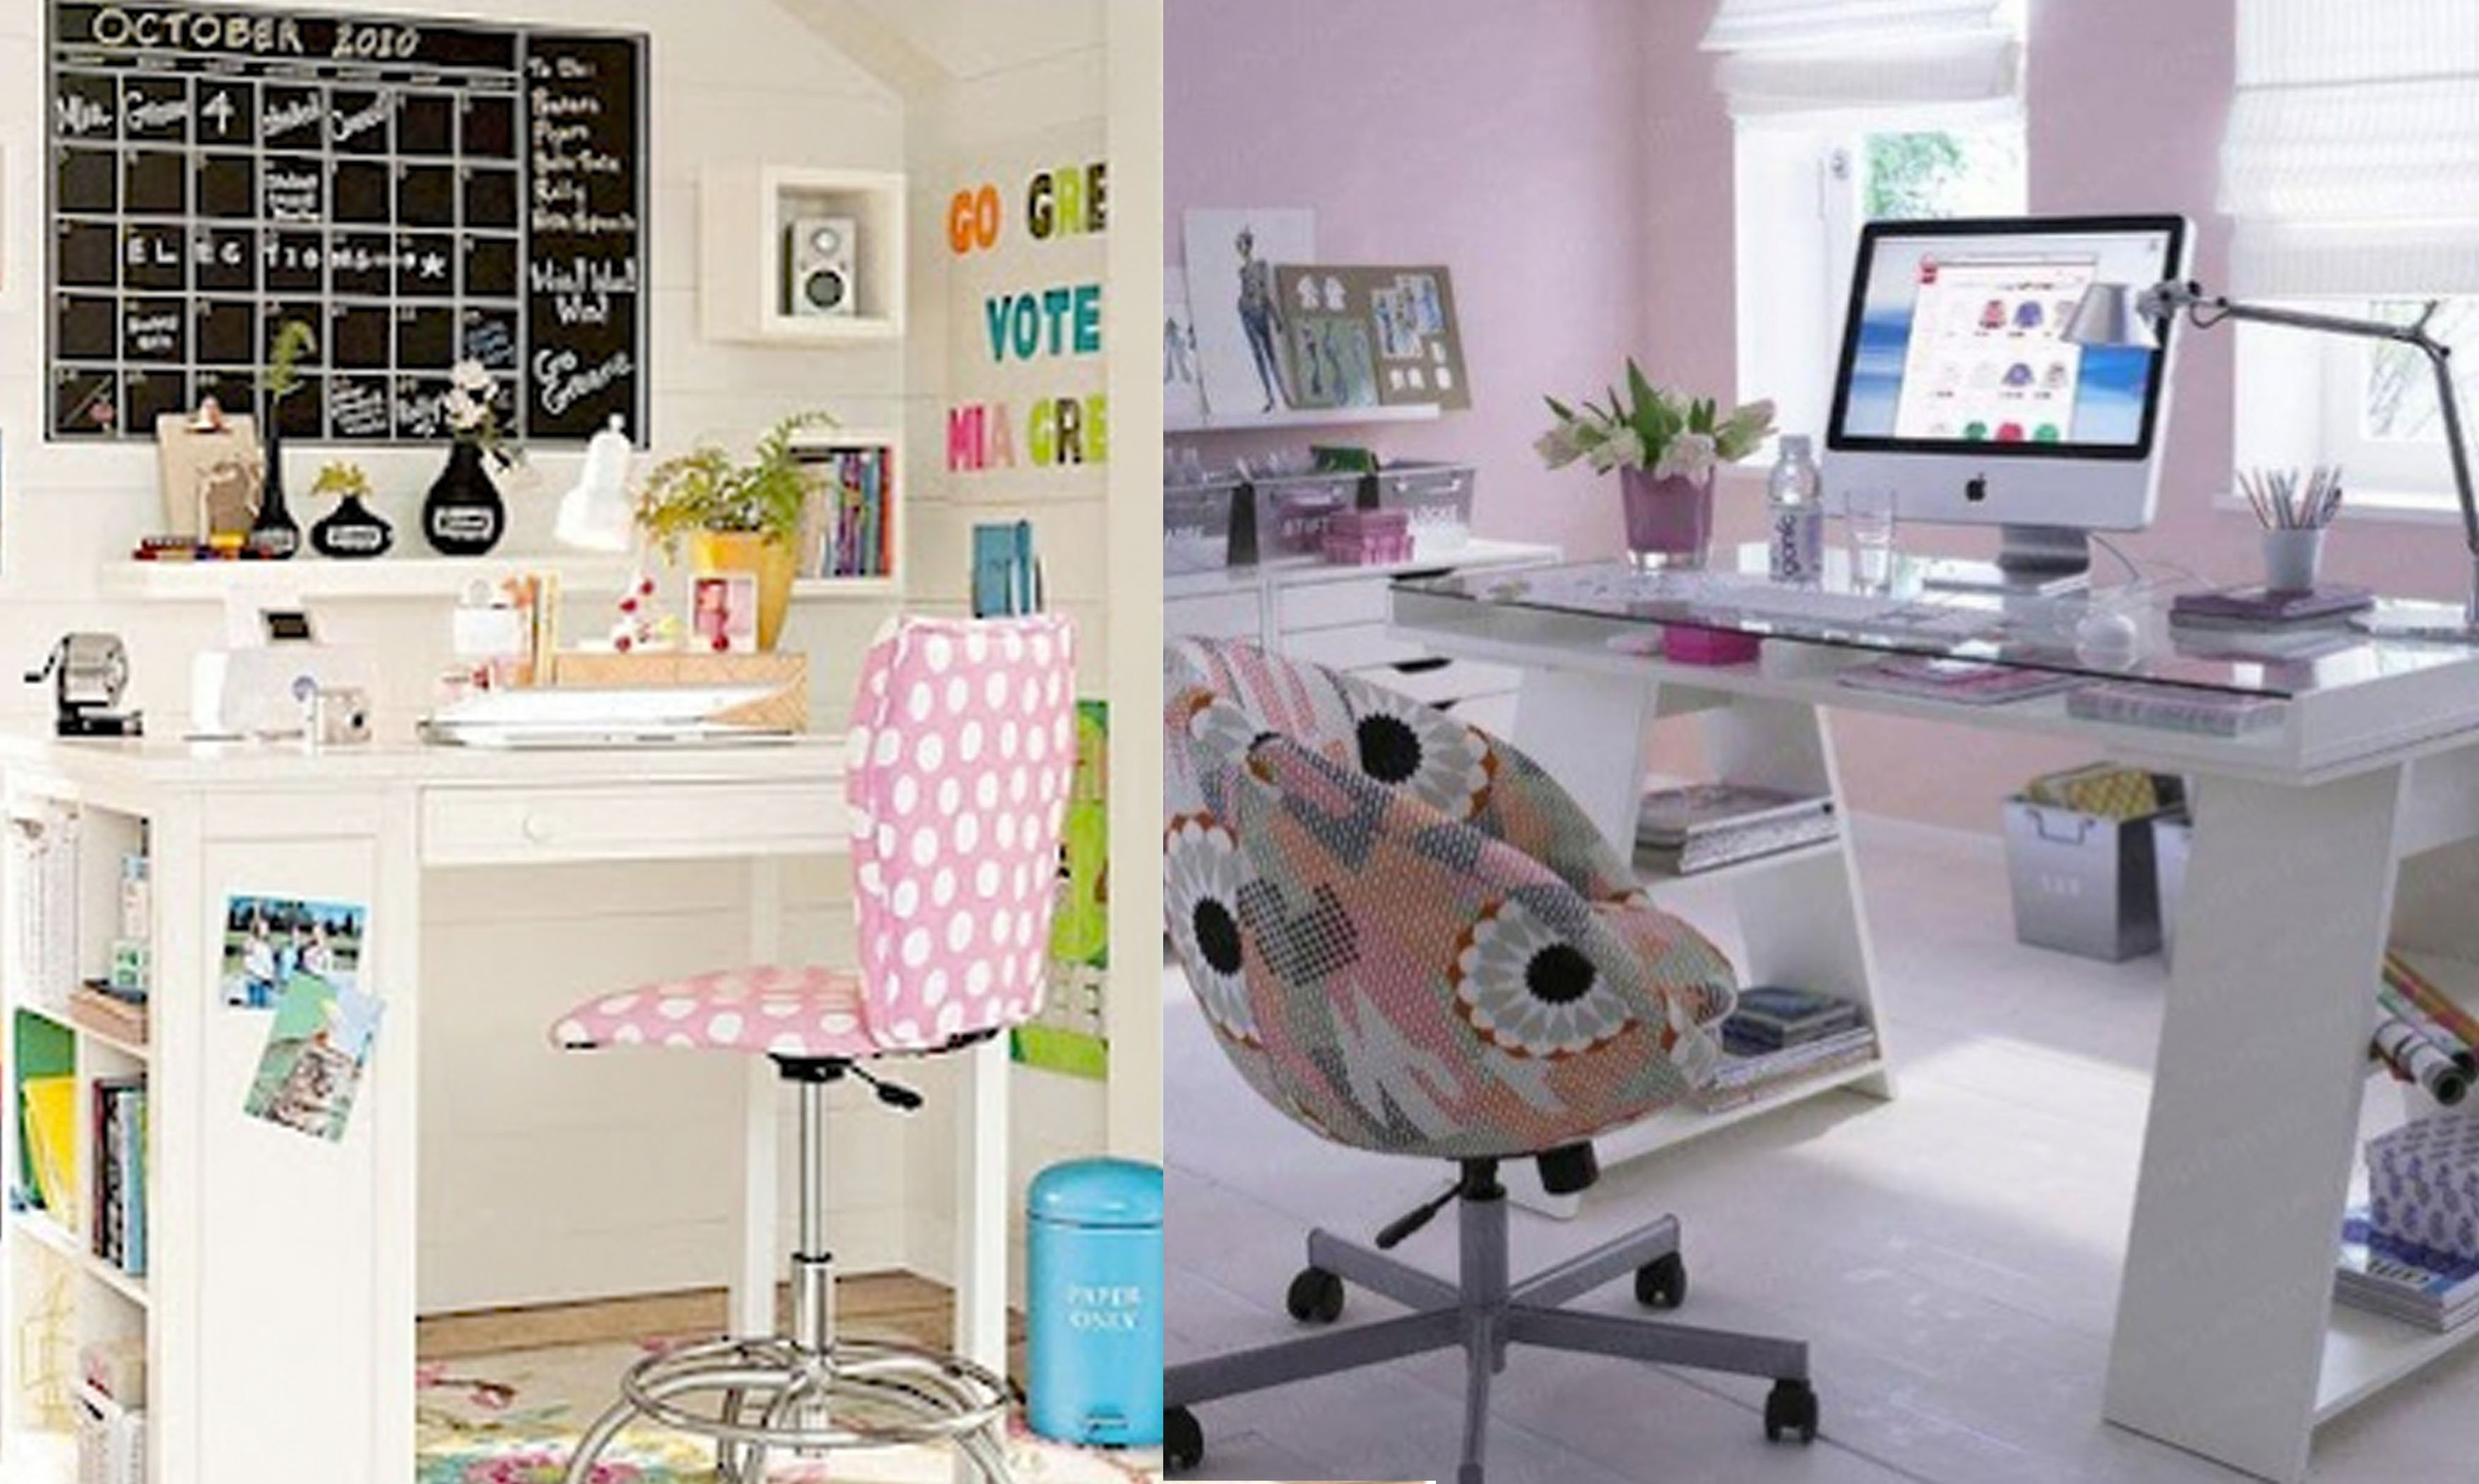 10 Attractive Decorating Office Ideas At Work amazing of affordable office decorating ideas for work f 5570 2 2021